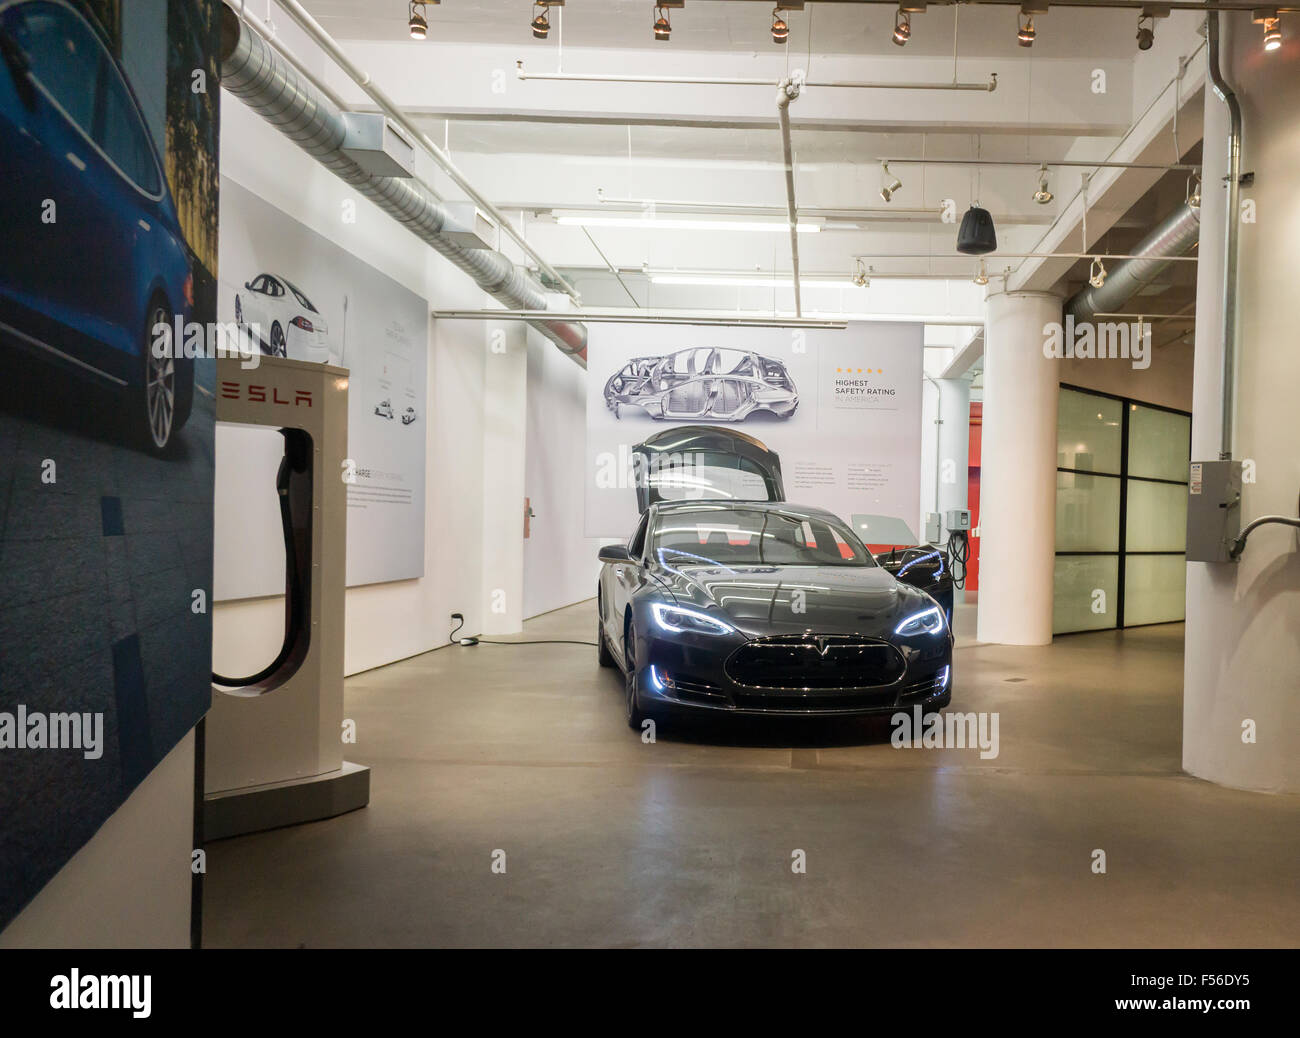 A Tesla Model S sits alone in the Tesla showroom in New York on Tuesday, October 20, 2015. Consumer Reports has - Stock Image